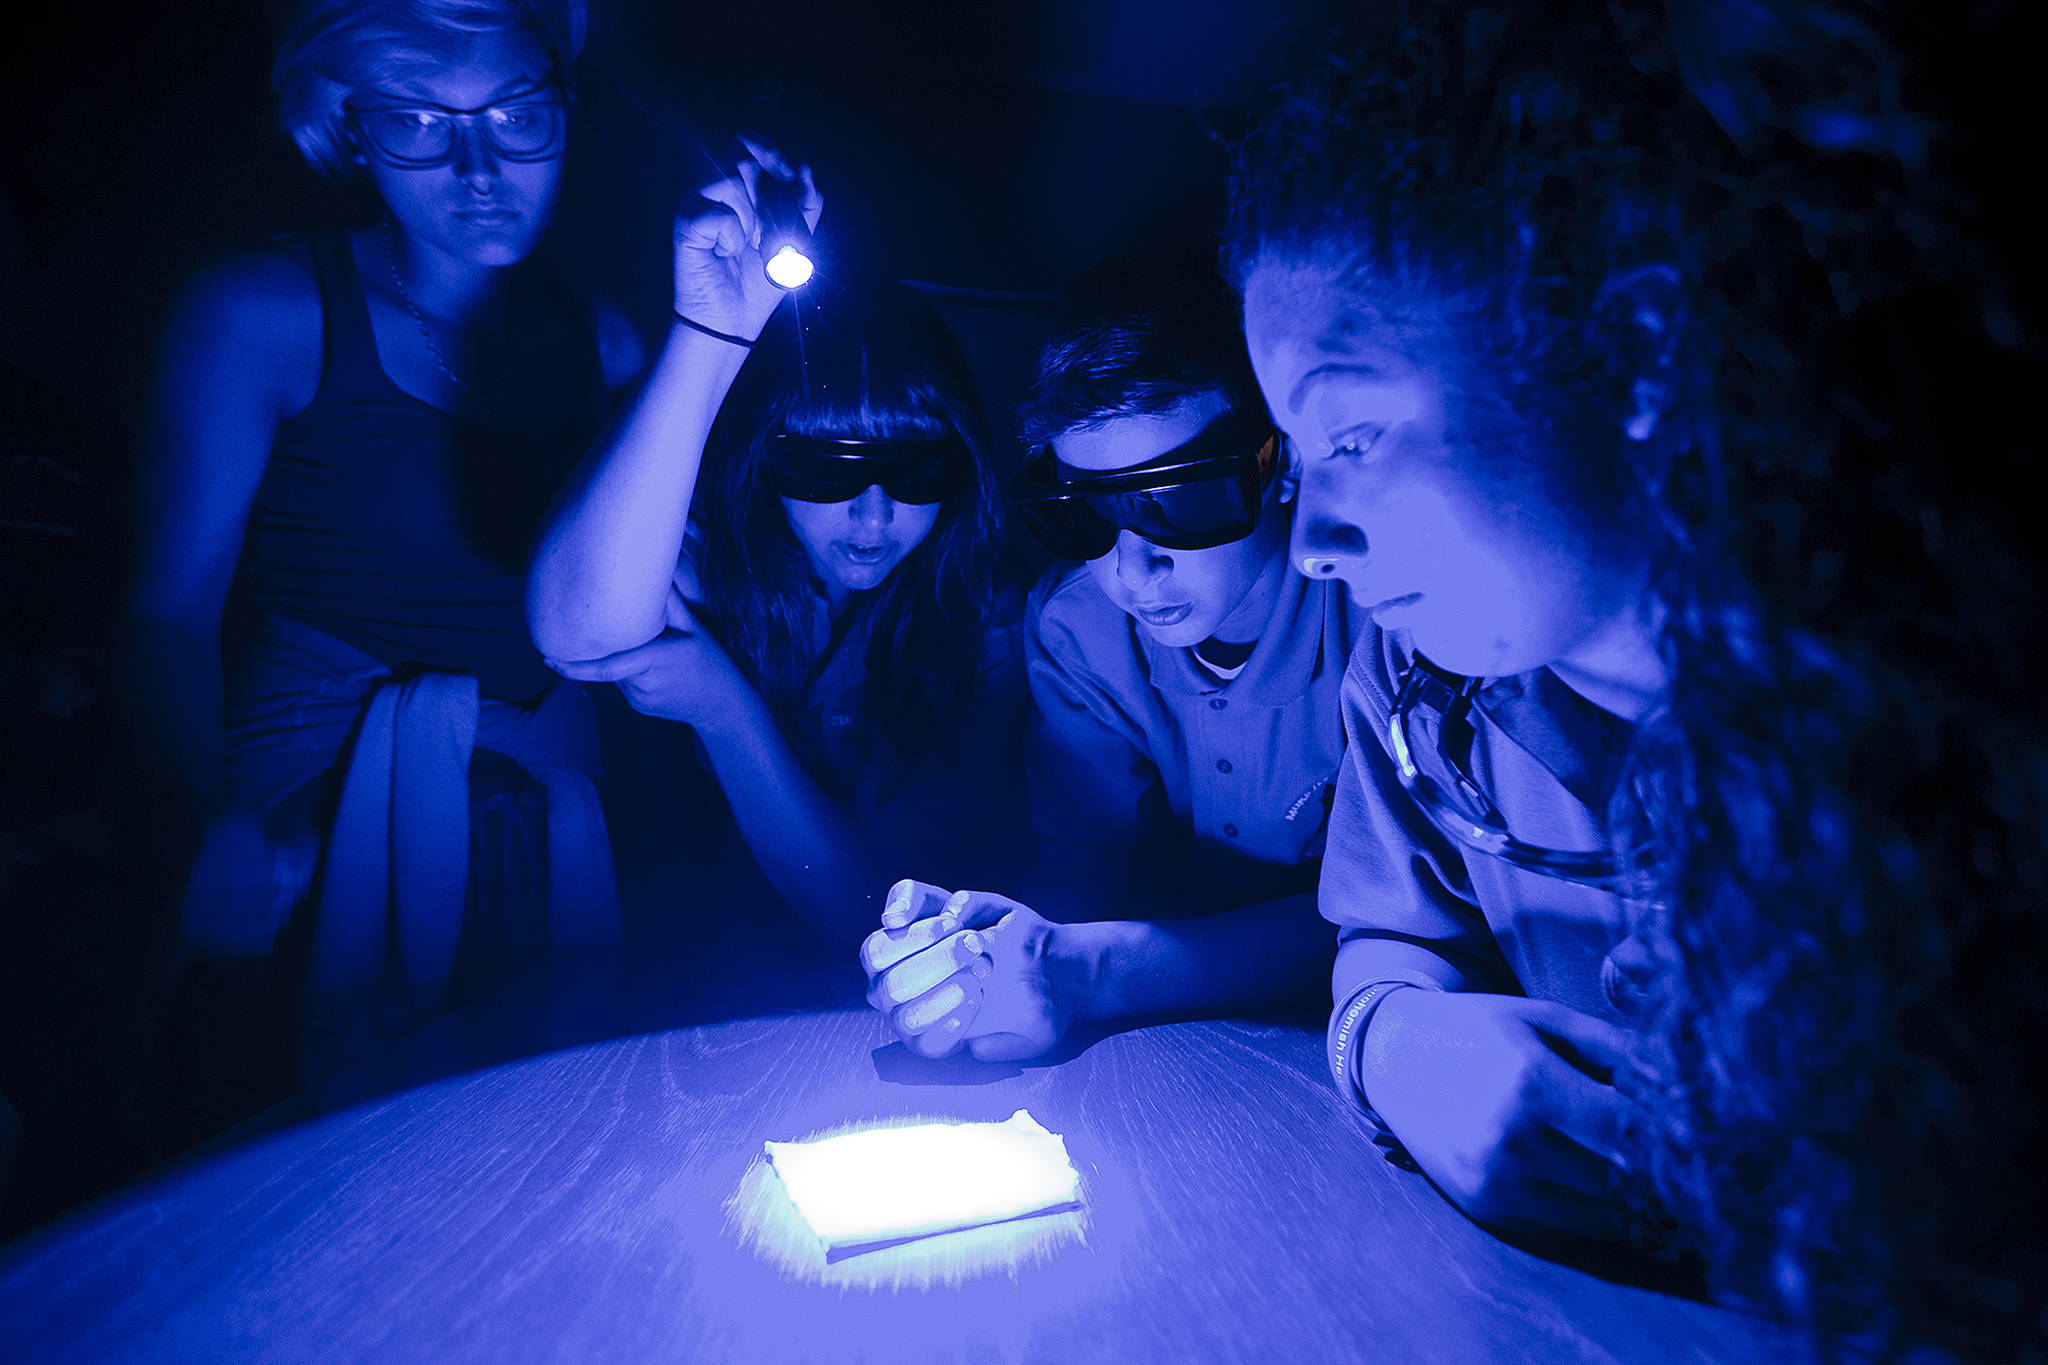 Mukilteo Youth Police Academy students (from left) Makena Porter, Abygahle Stumpf, Alex Baltrukovicz and Colleen Alvarez use a UV light to look for hair samples in a piece of carpet during a class on forensics at Kamiak High School on Thursday. (Ian Terry / The Herald)